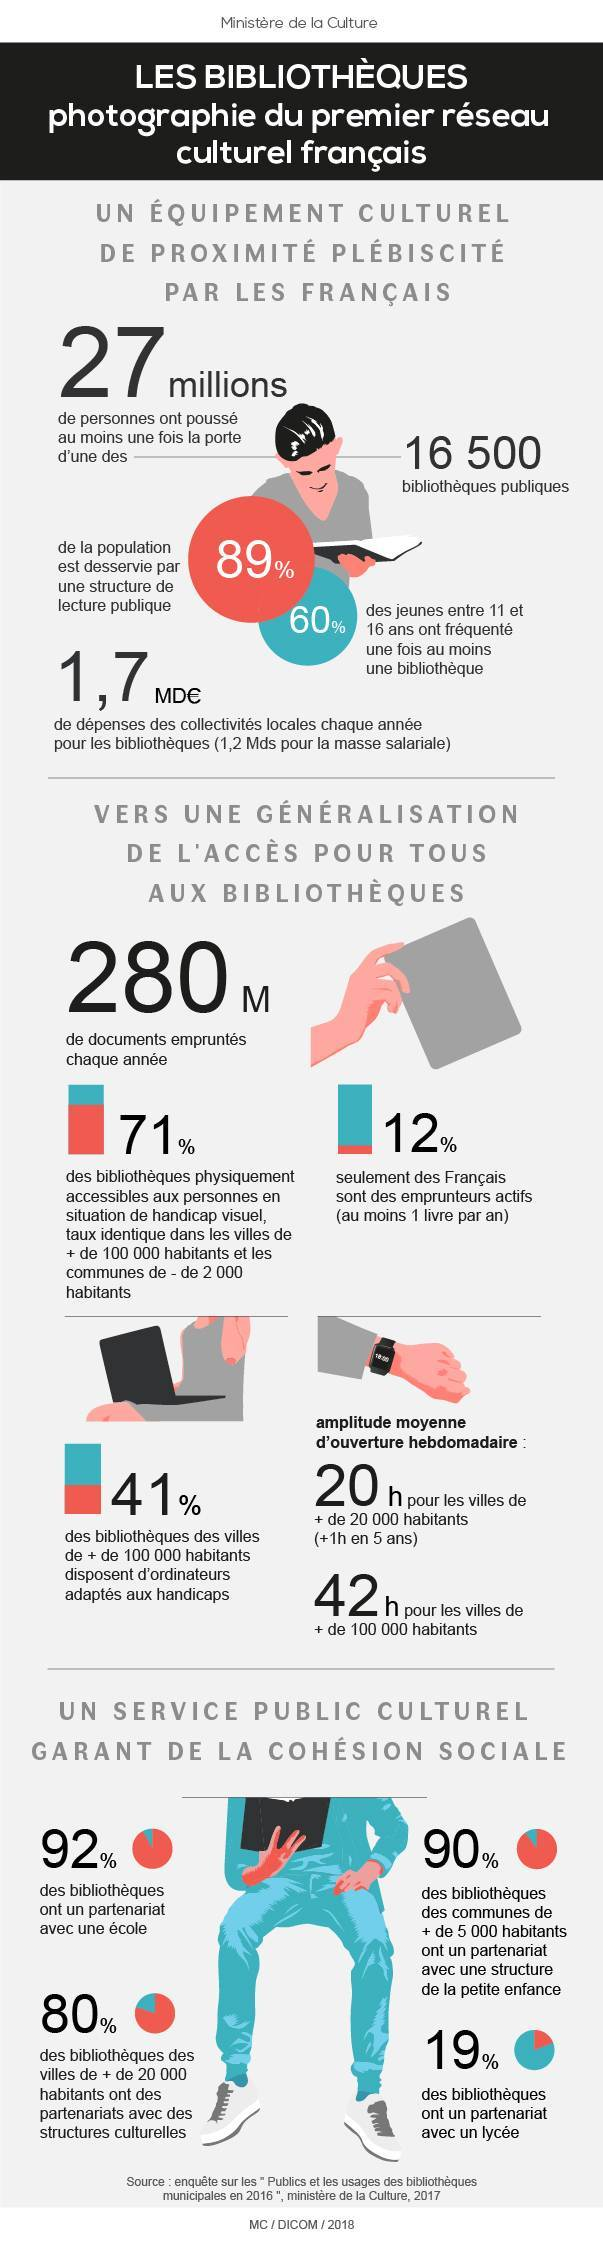 http://www.culture.gouv.fr/var/culture/storage/images/media/actualites/2018/fevrier/infographie-bibliotheques-rapport-orsenna/1995058-1-fre-FR/infographie-bibliotheques-rapport-orsenna_full_with.jpg